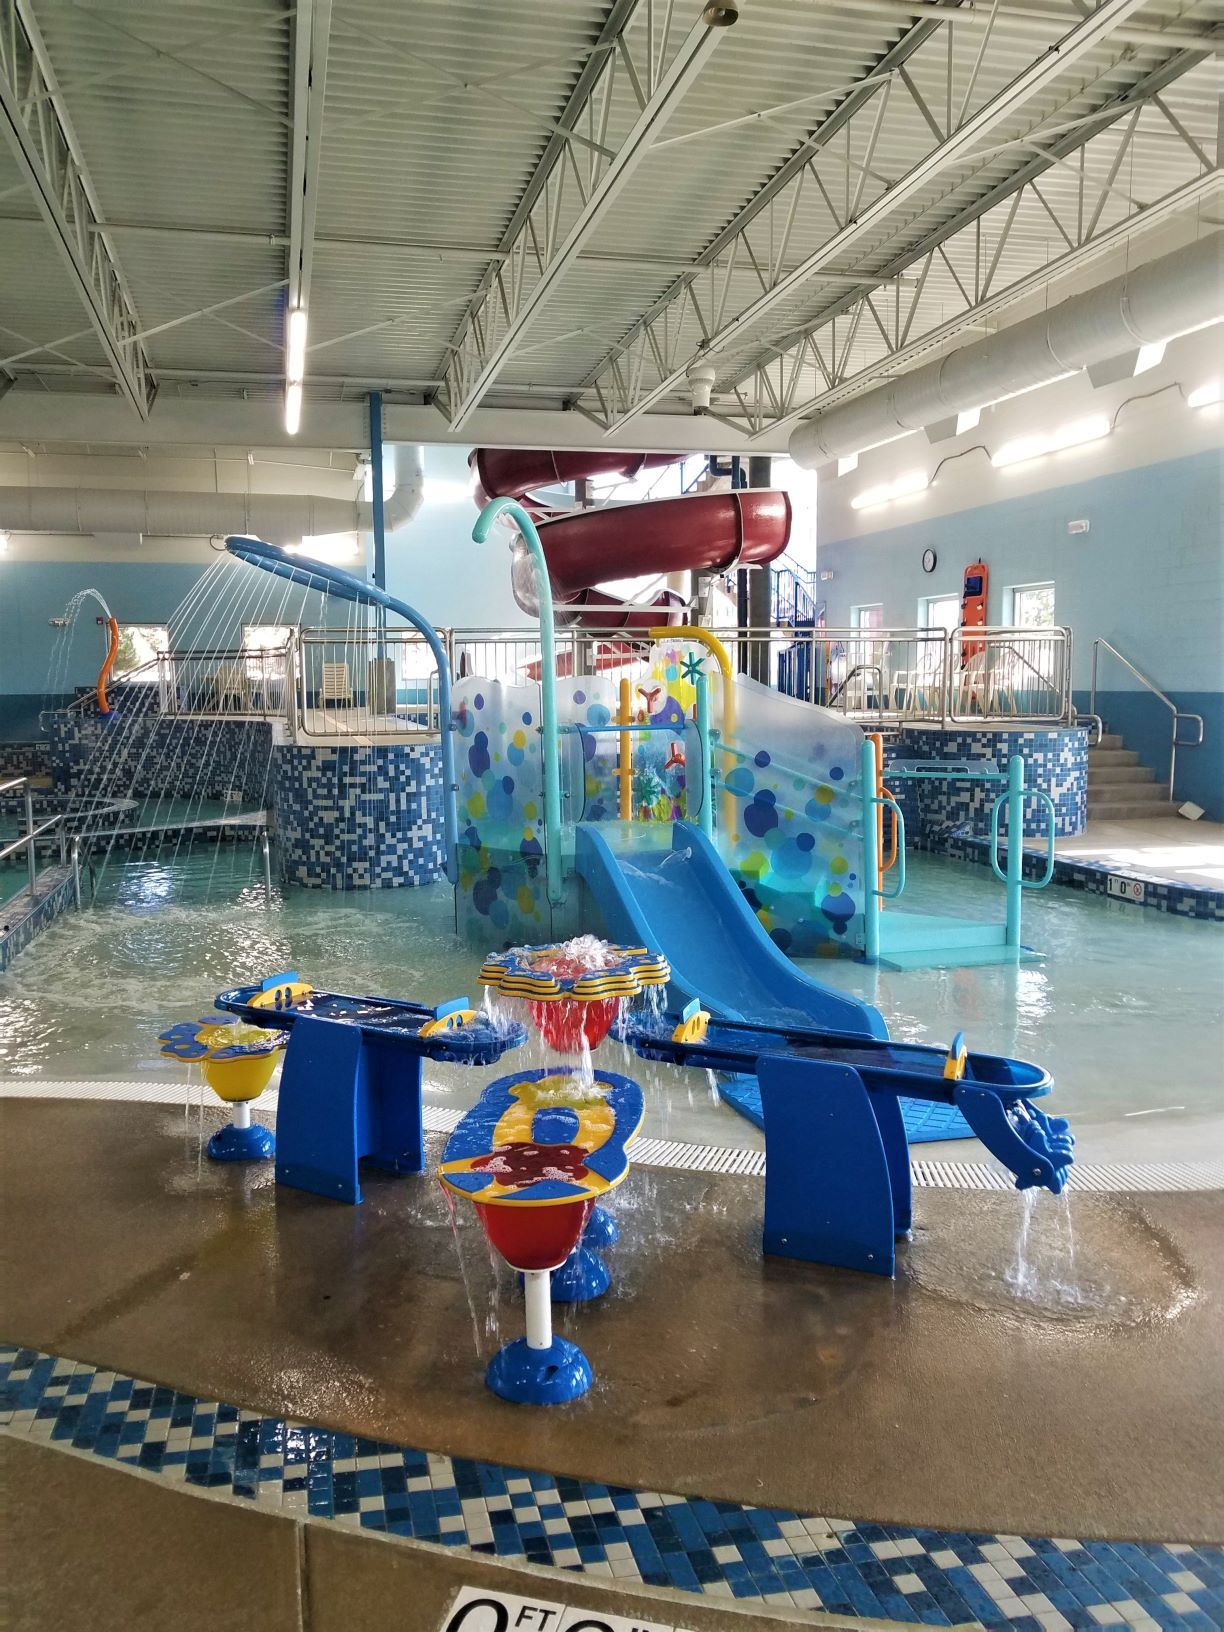 Play feature in actvity pool with fountains and small slide.